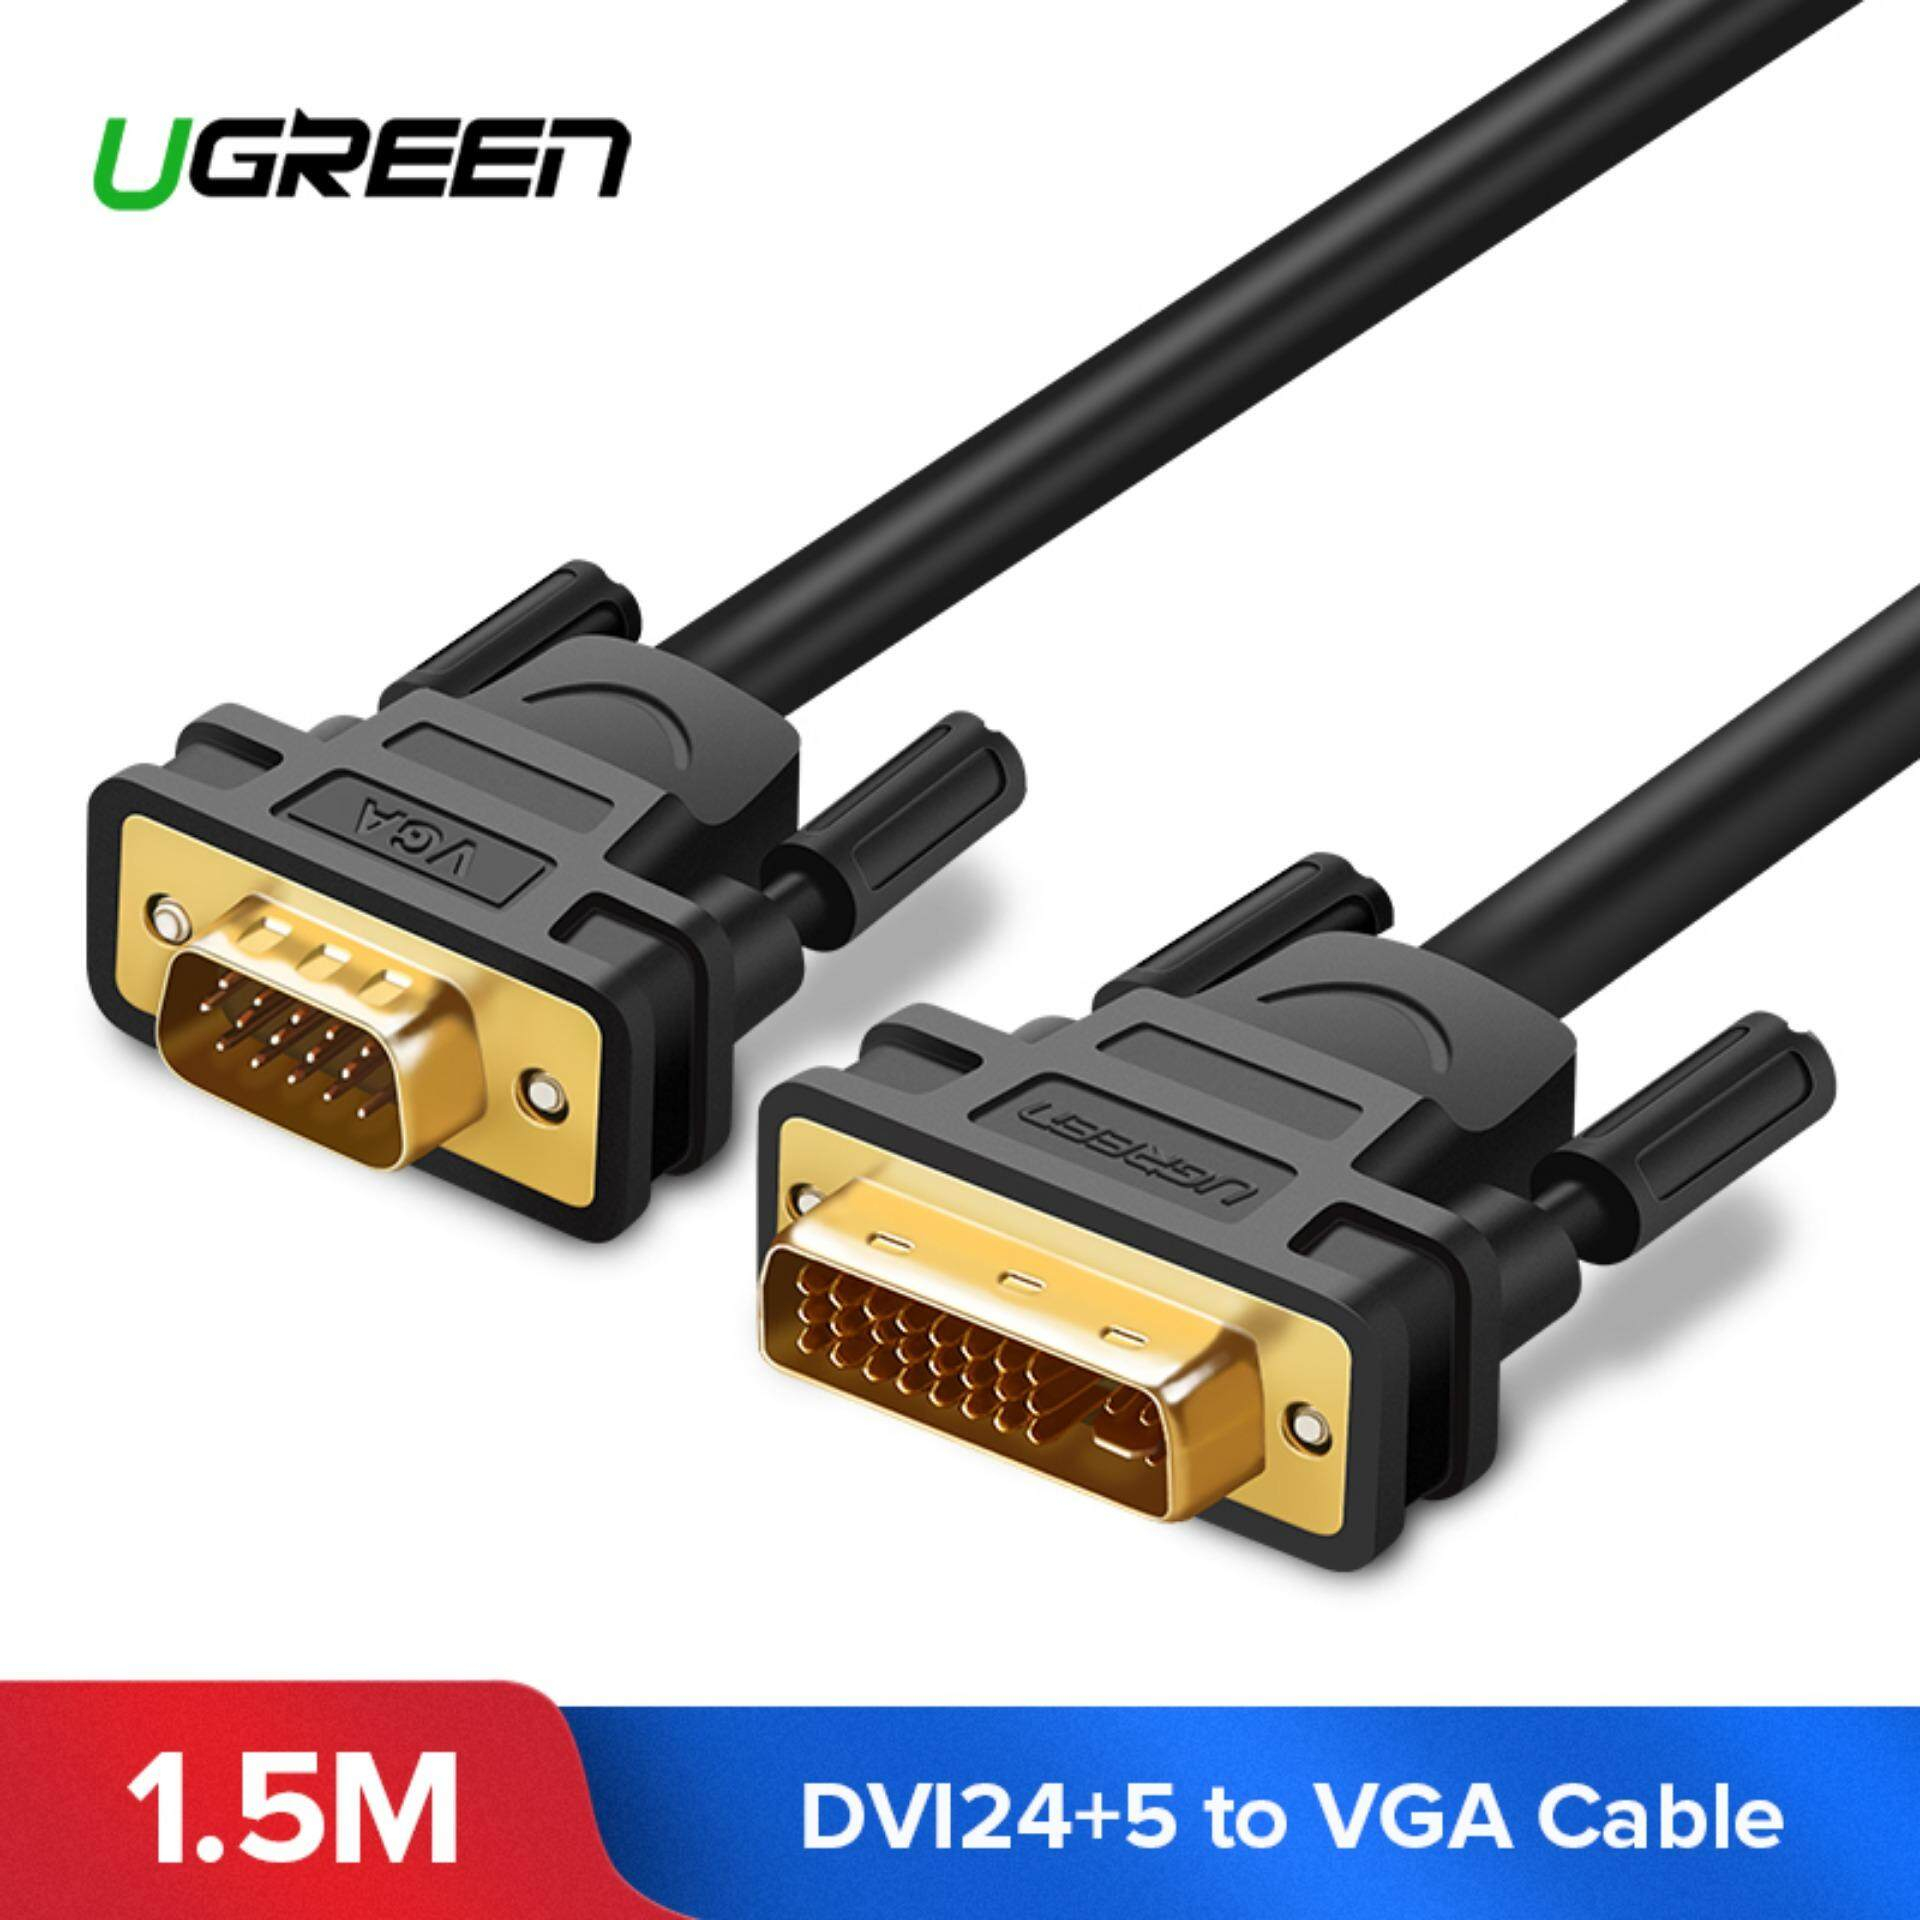 Micro Hdmi To Dvi 24pin 1pin Transfer Data Extension Cable For Vedio Computer Phone Display Back To Search Resultscomputer & Office